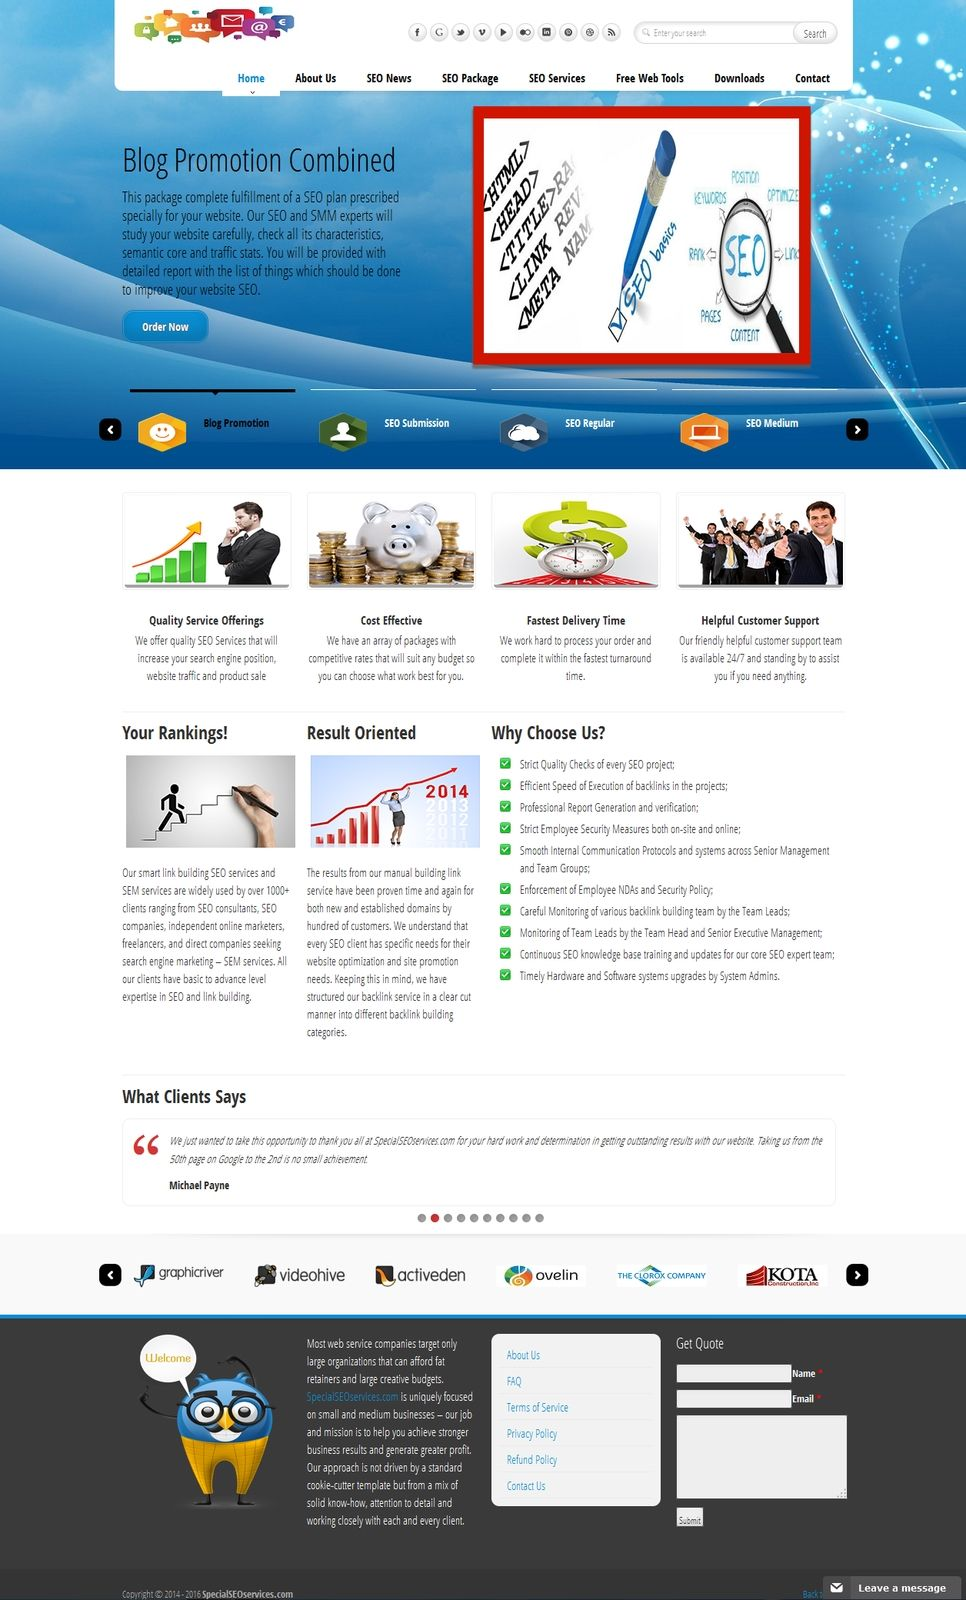 Turnkey 45 in 1 SEO, Social, Traffic Reseller Business